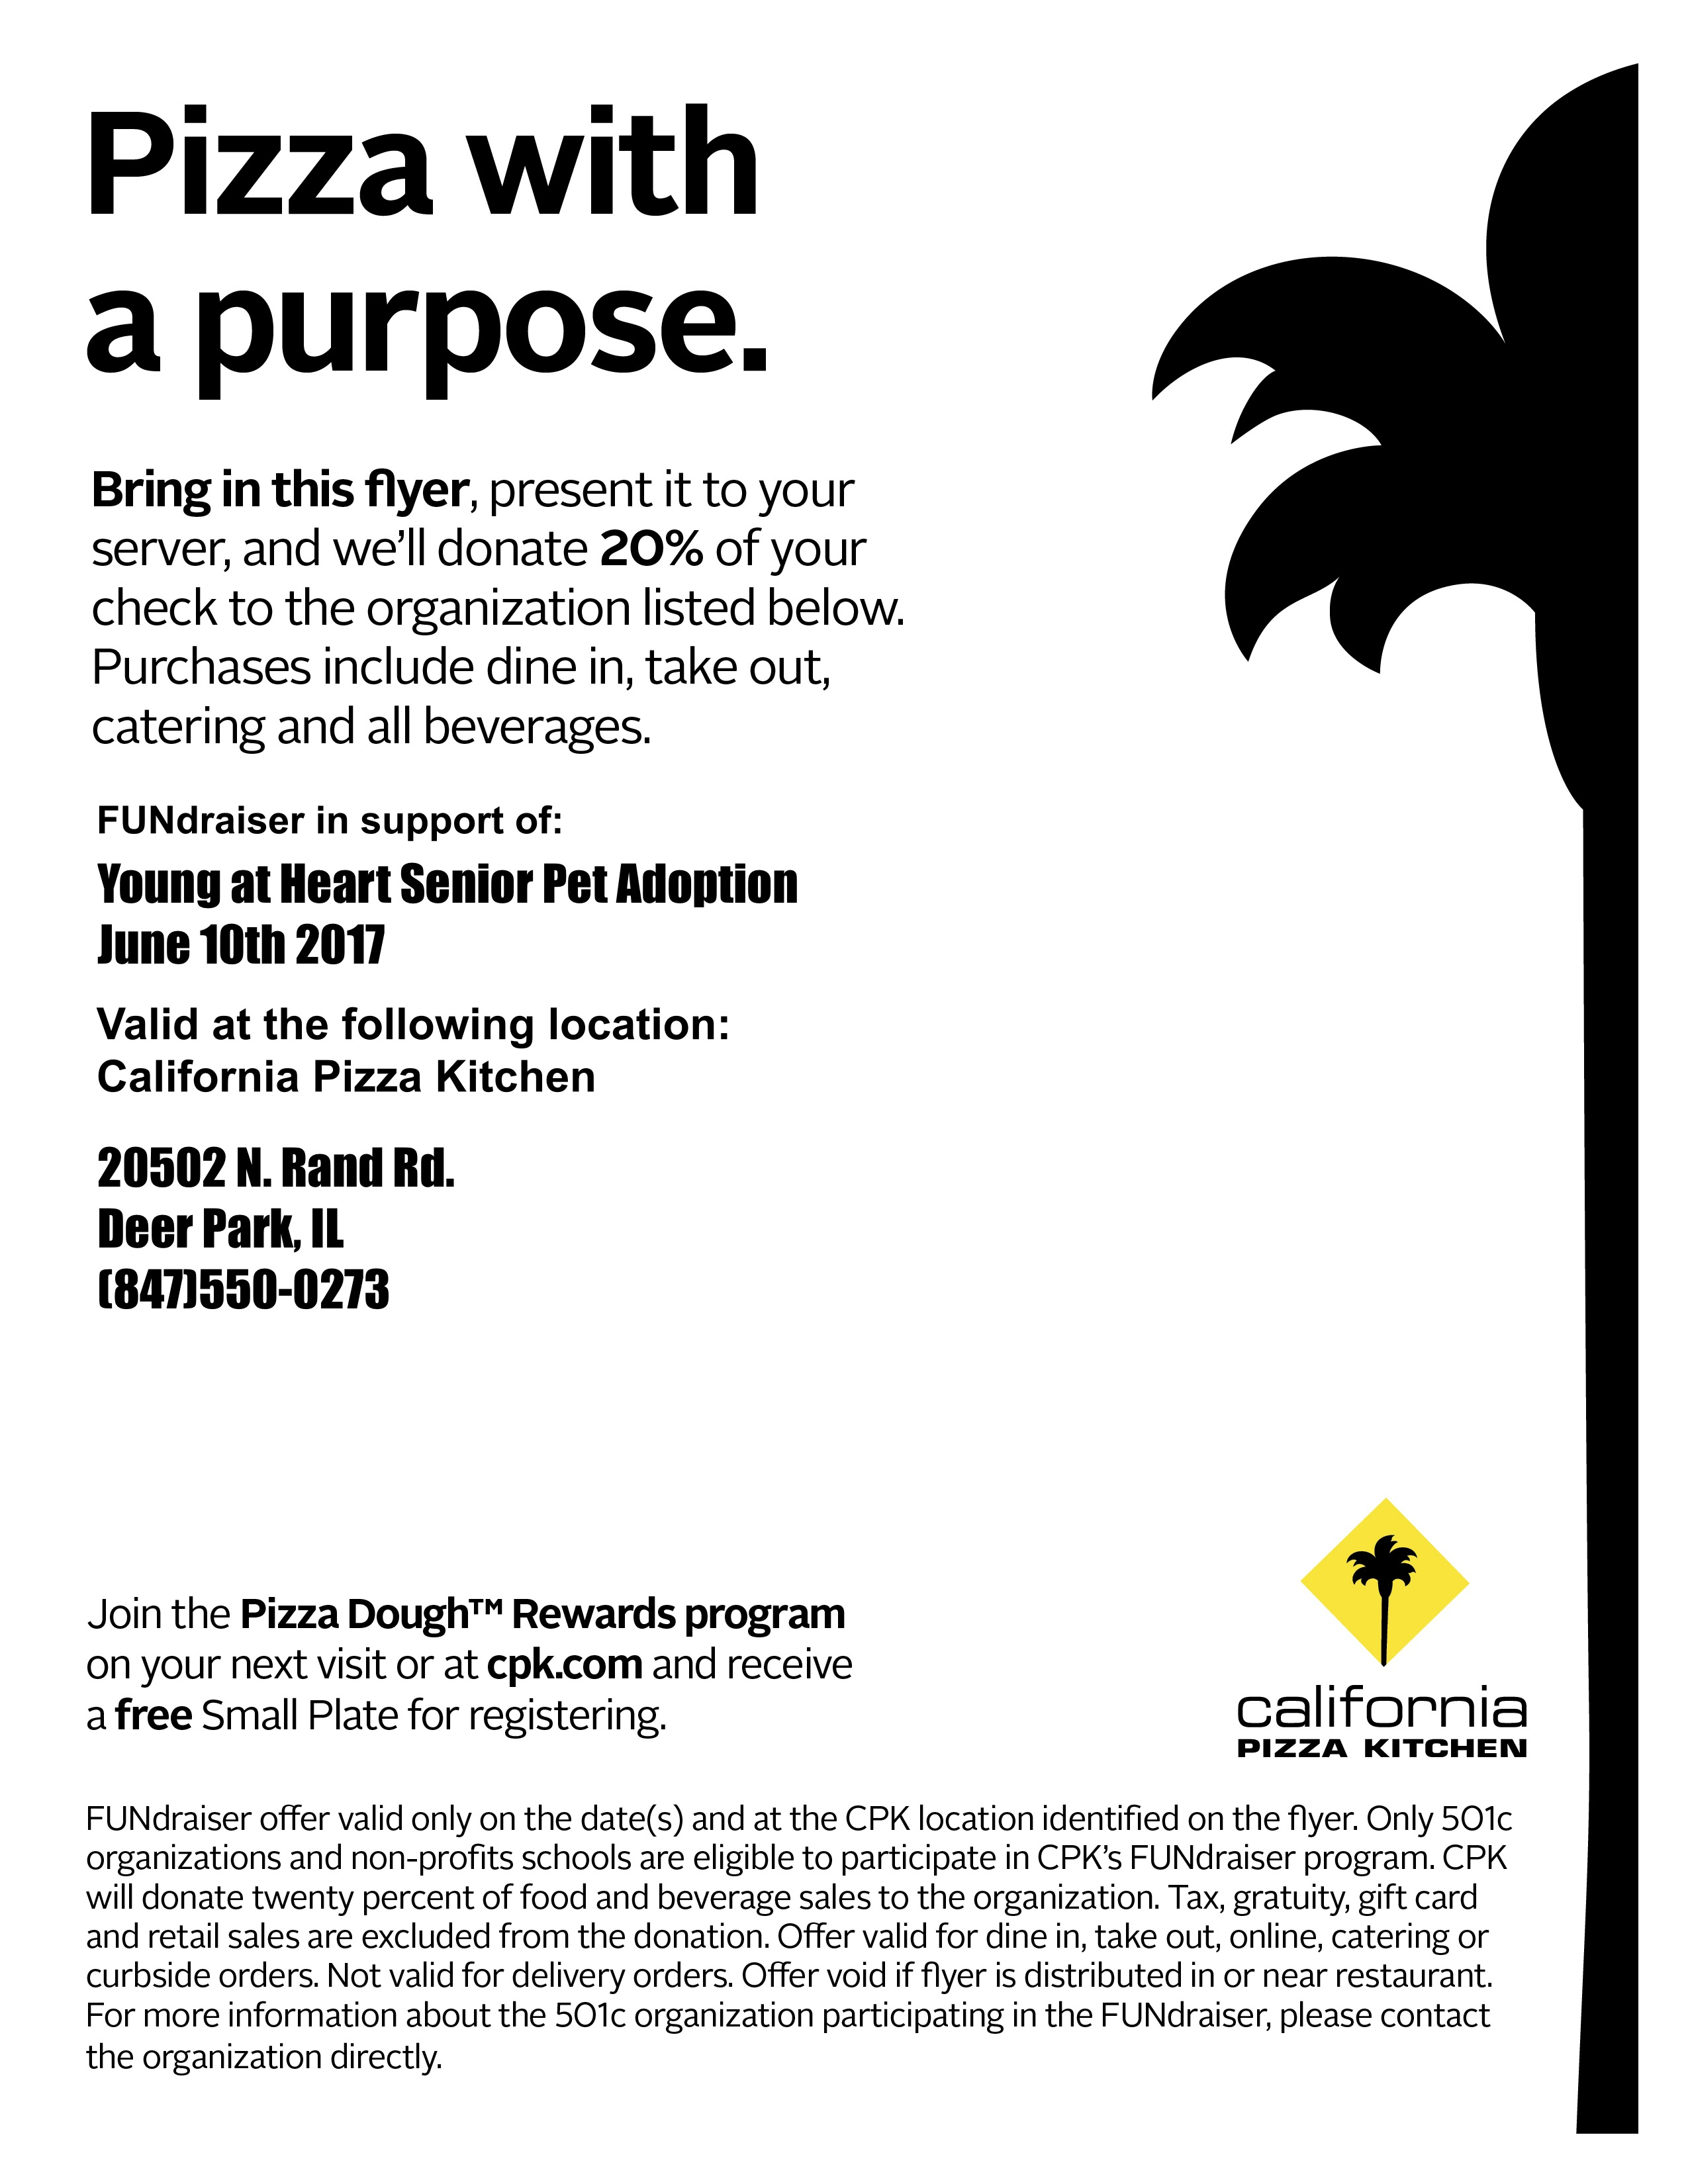 California Pizza Kitchen Fundraiser - Young At Heart